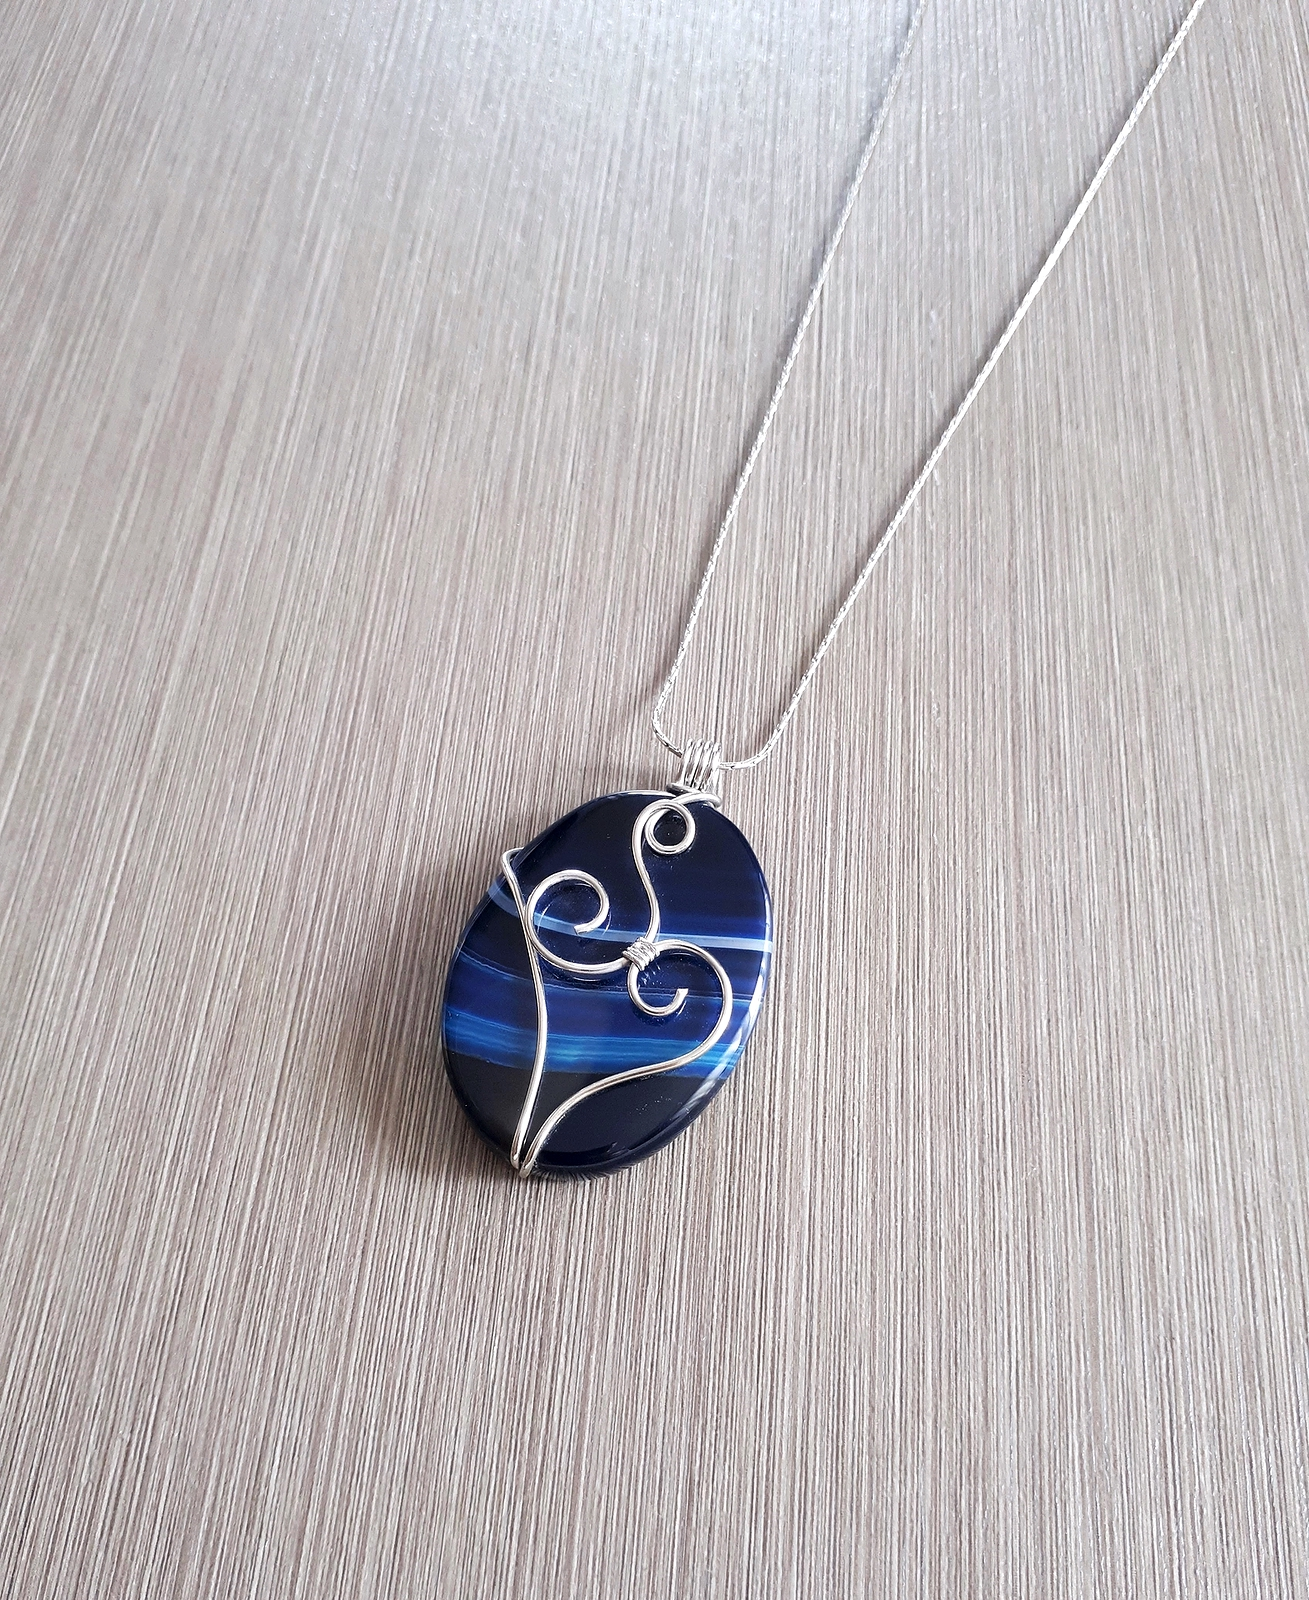 Wire wrapped blue onyx pendant aloadofball Image collections